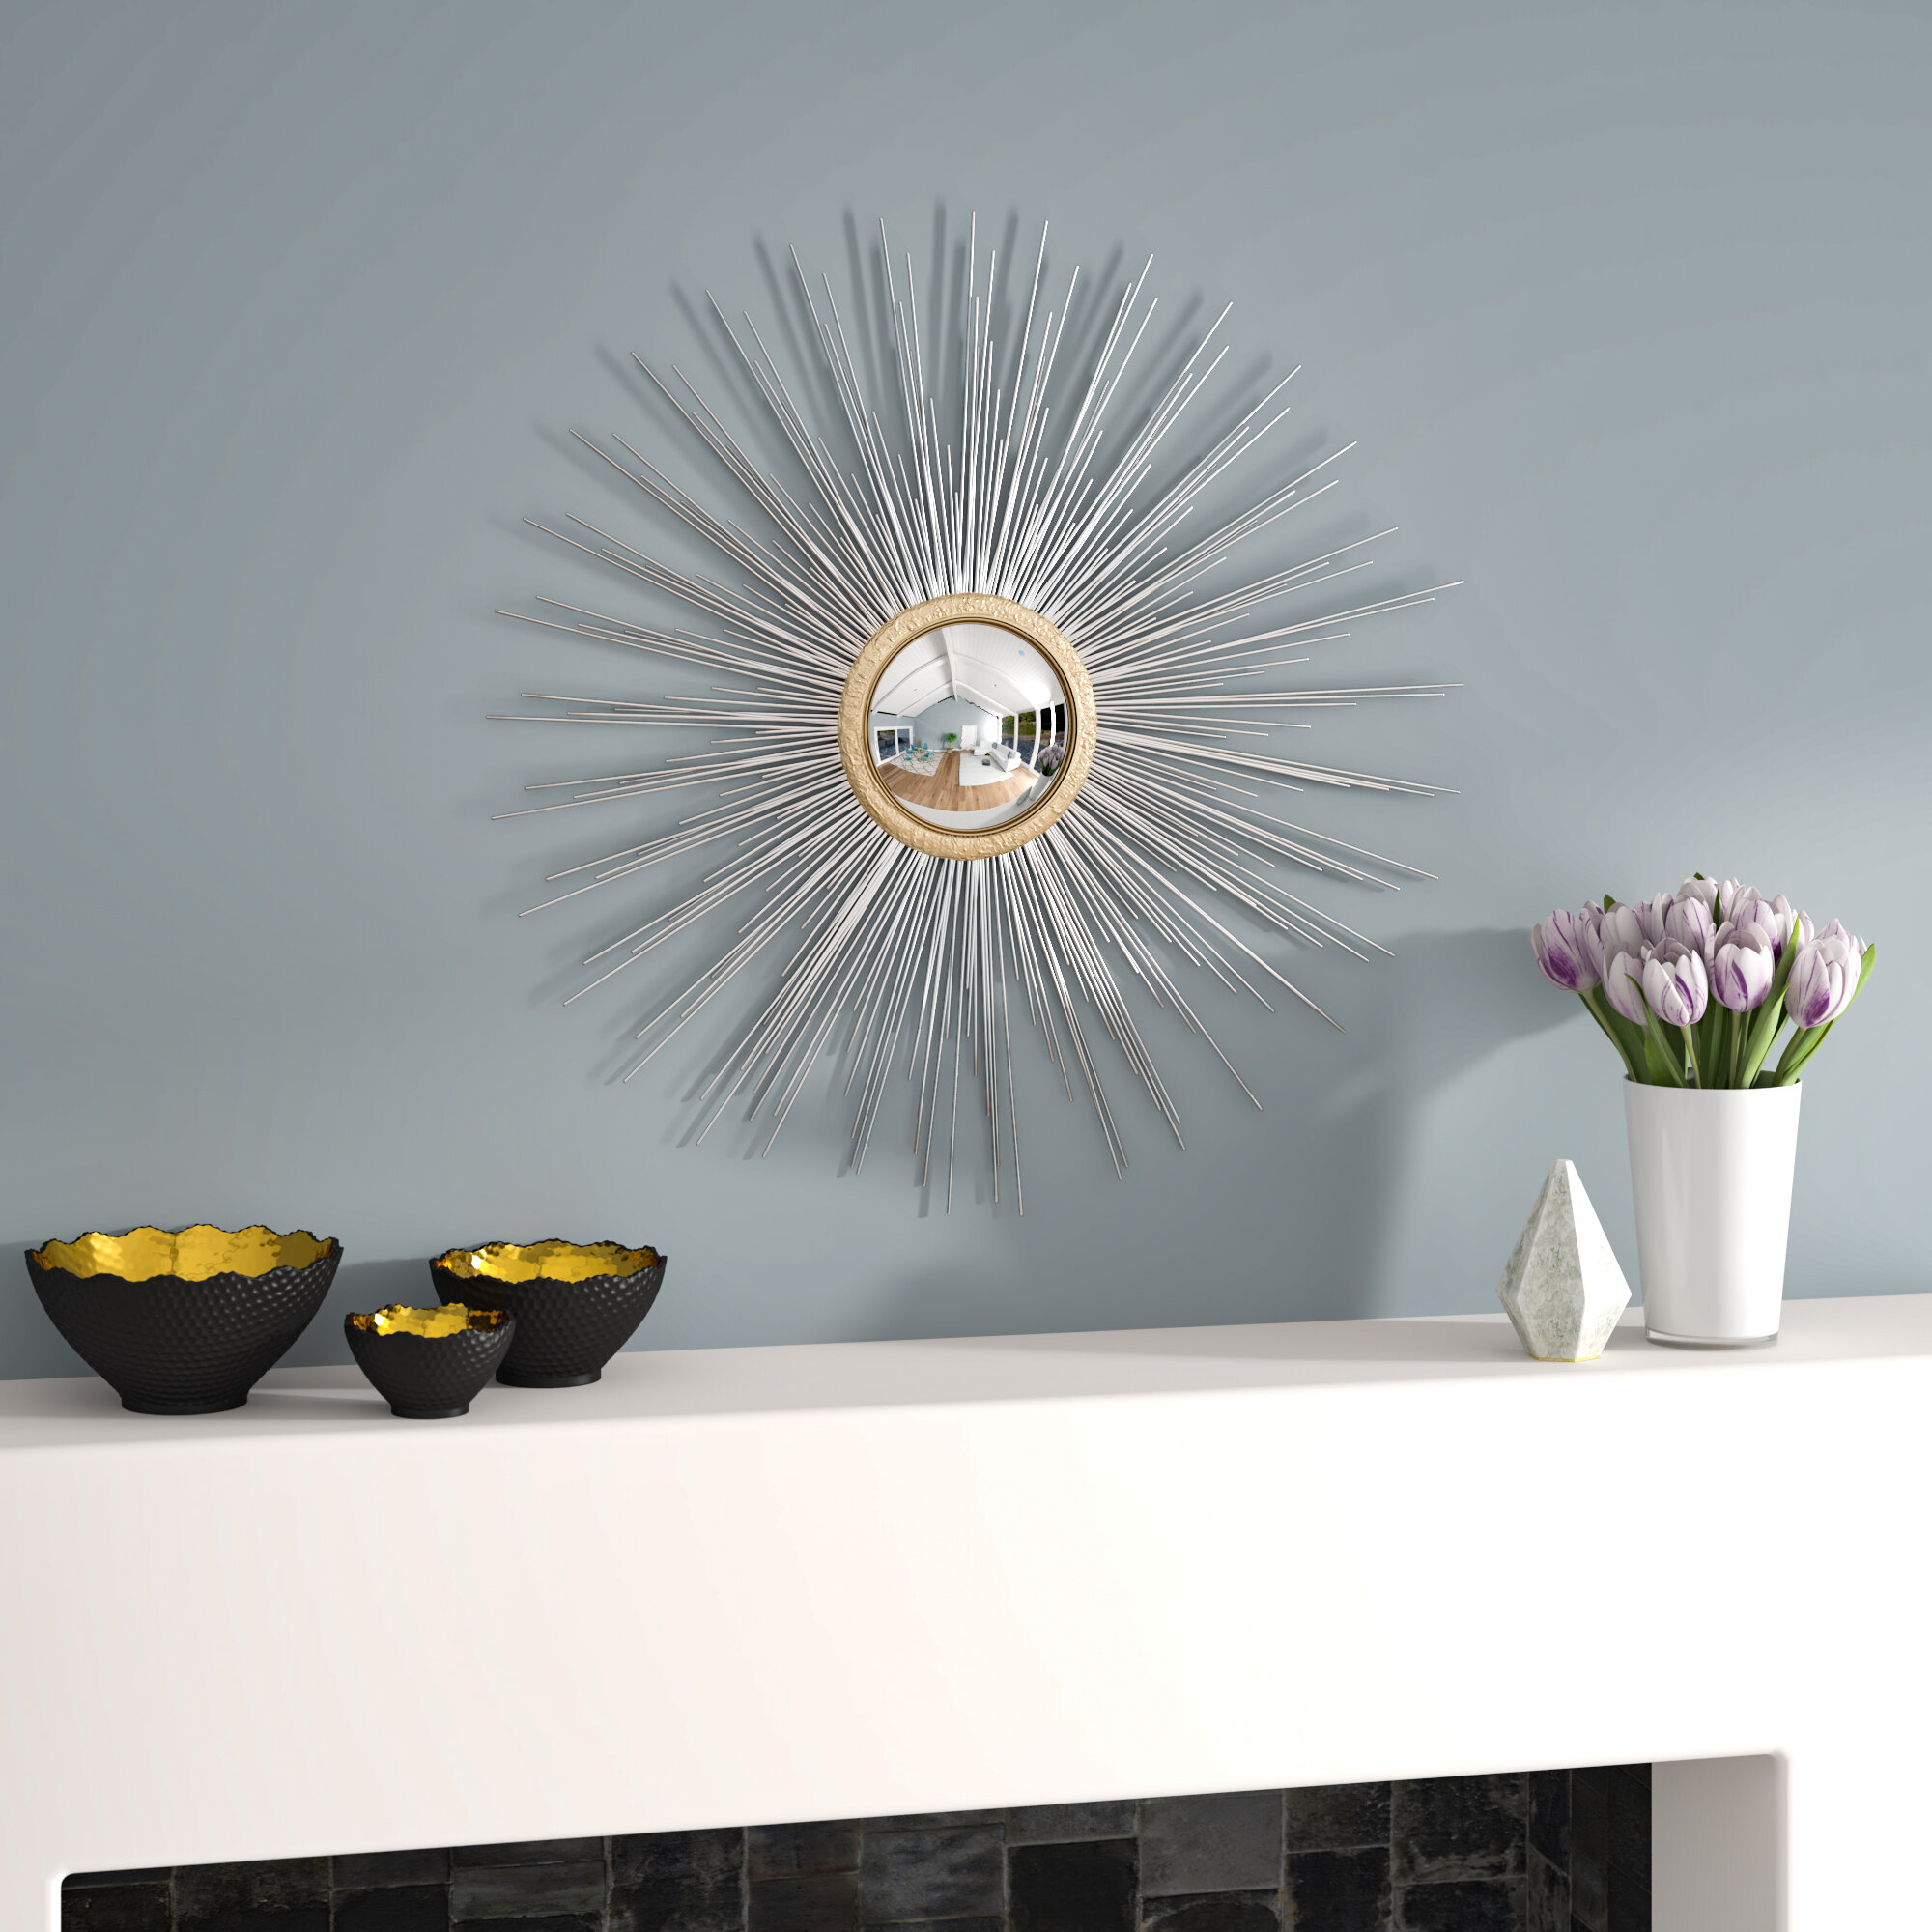 Starburst Sculpture | Wayfair In Set Of 3 Contemporary 6, 9, And 11 Inch Gold Tin Starburst Sculptures (View 10 of 30)